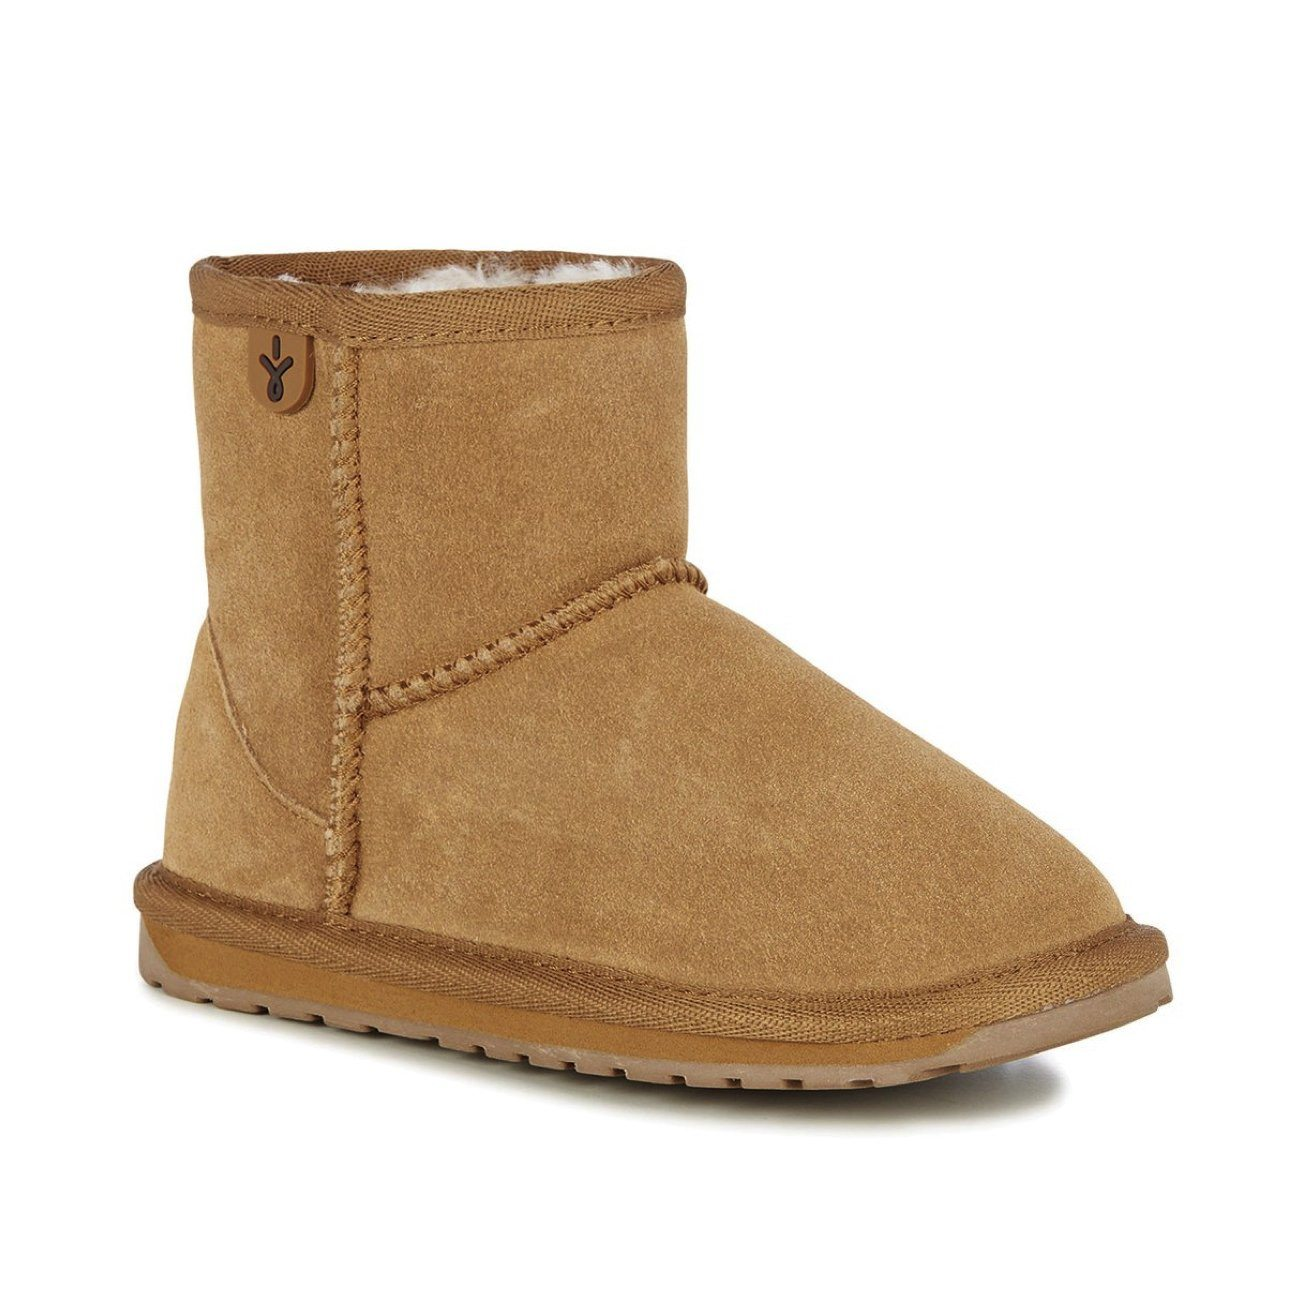 Emu Australia, Wallaby, Childrens, Suede Leather, Mini Chestnut Ugg Boots Emu Australia Chestnut 10